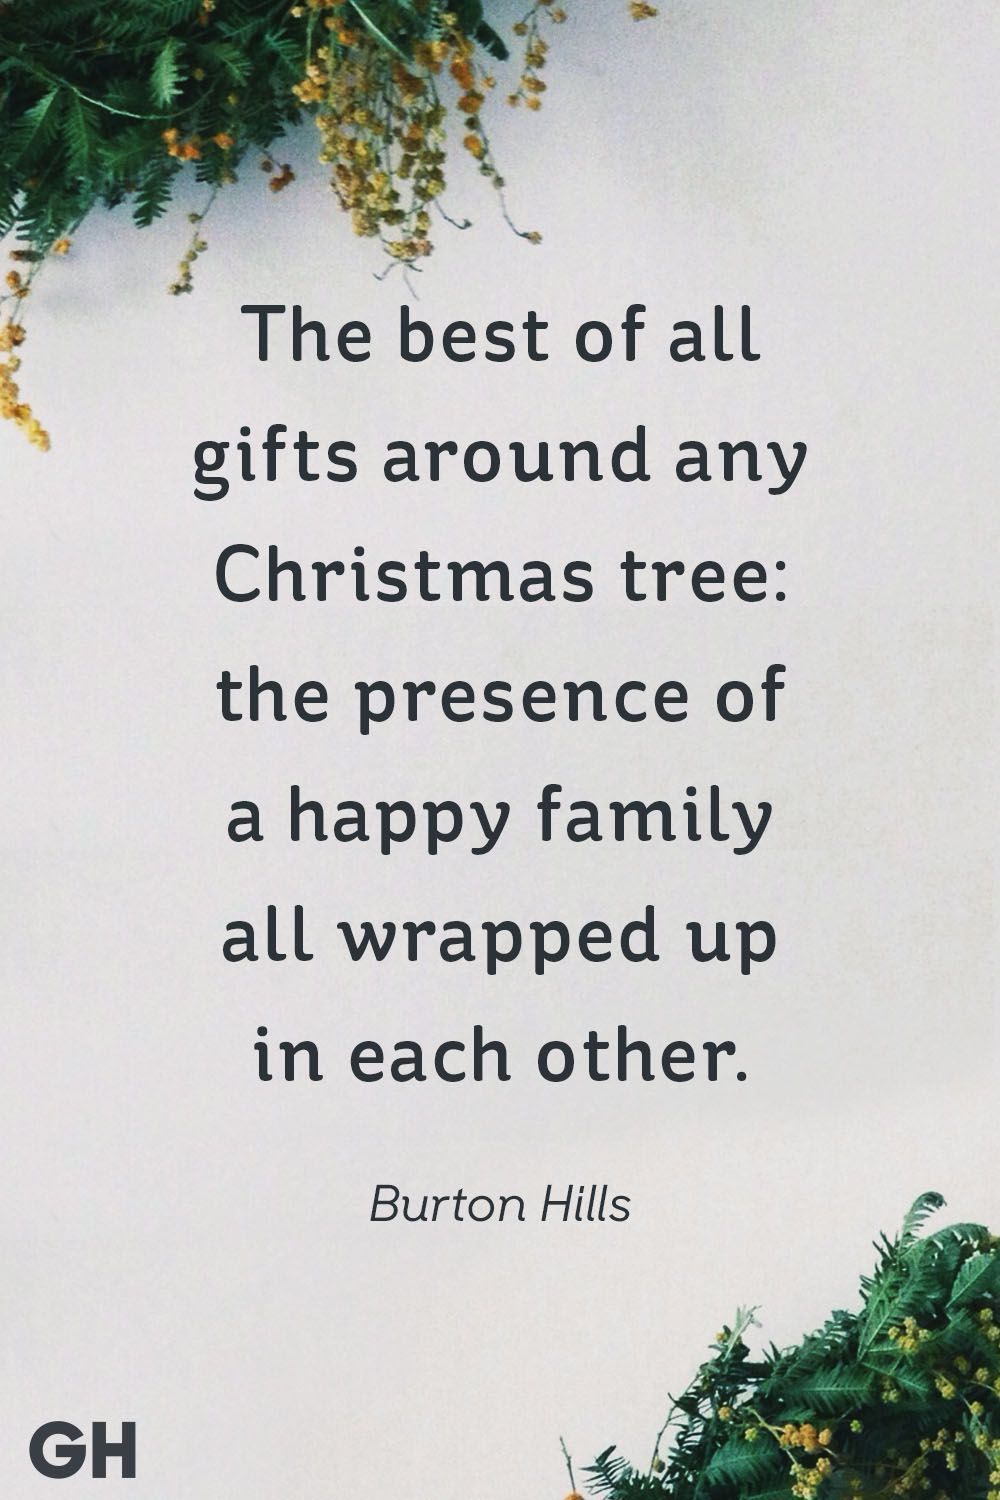 The Family First Christmas Quotes For Friends Holiday Quotes Christmas Quotes Images